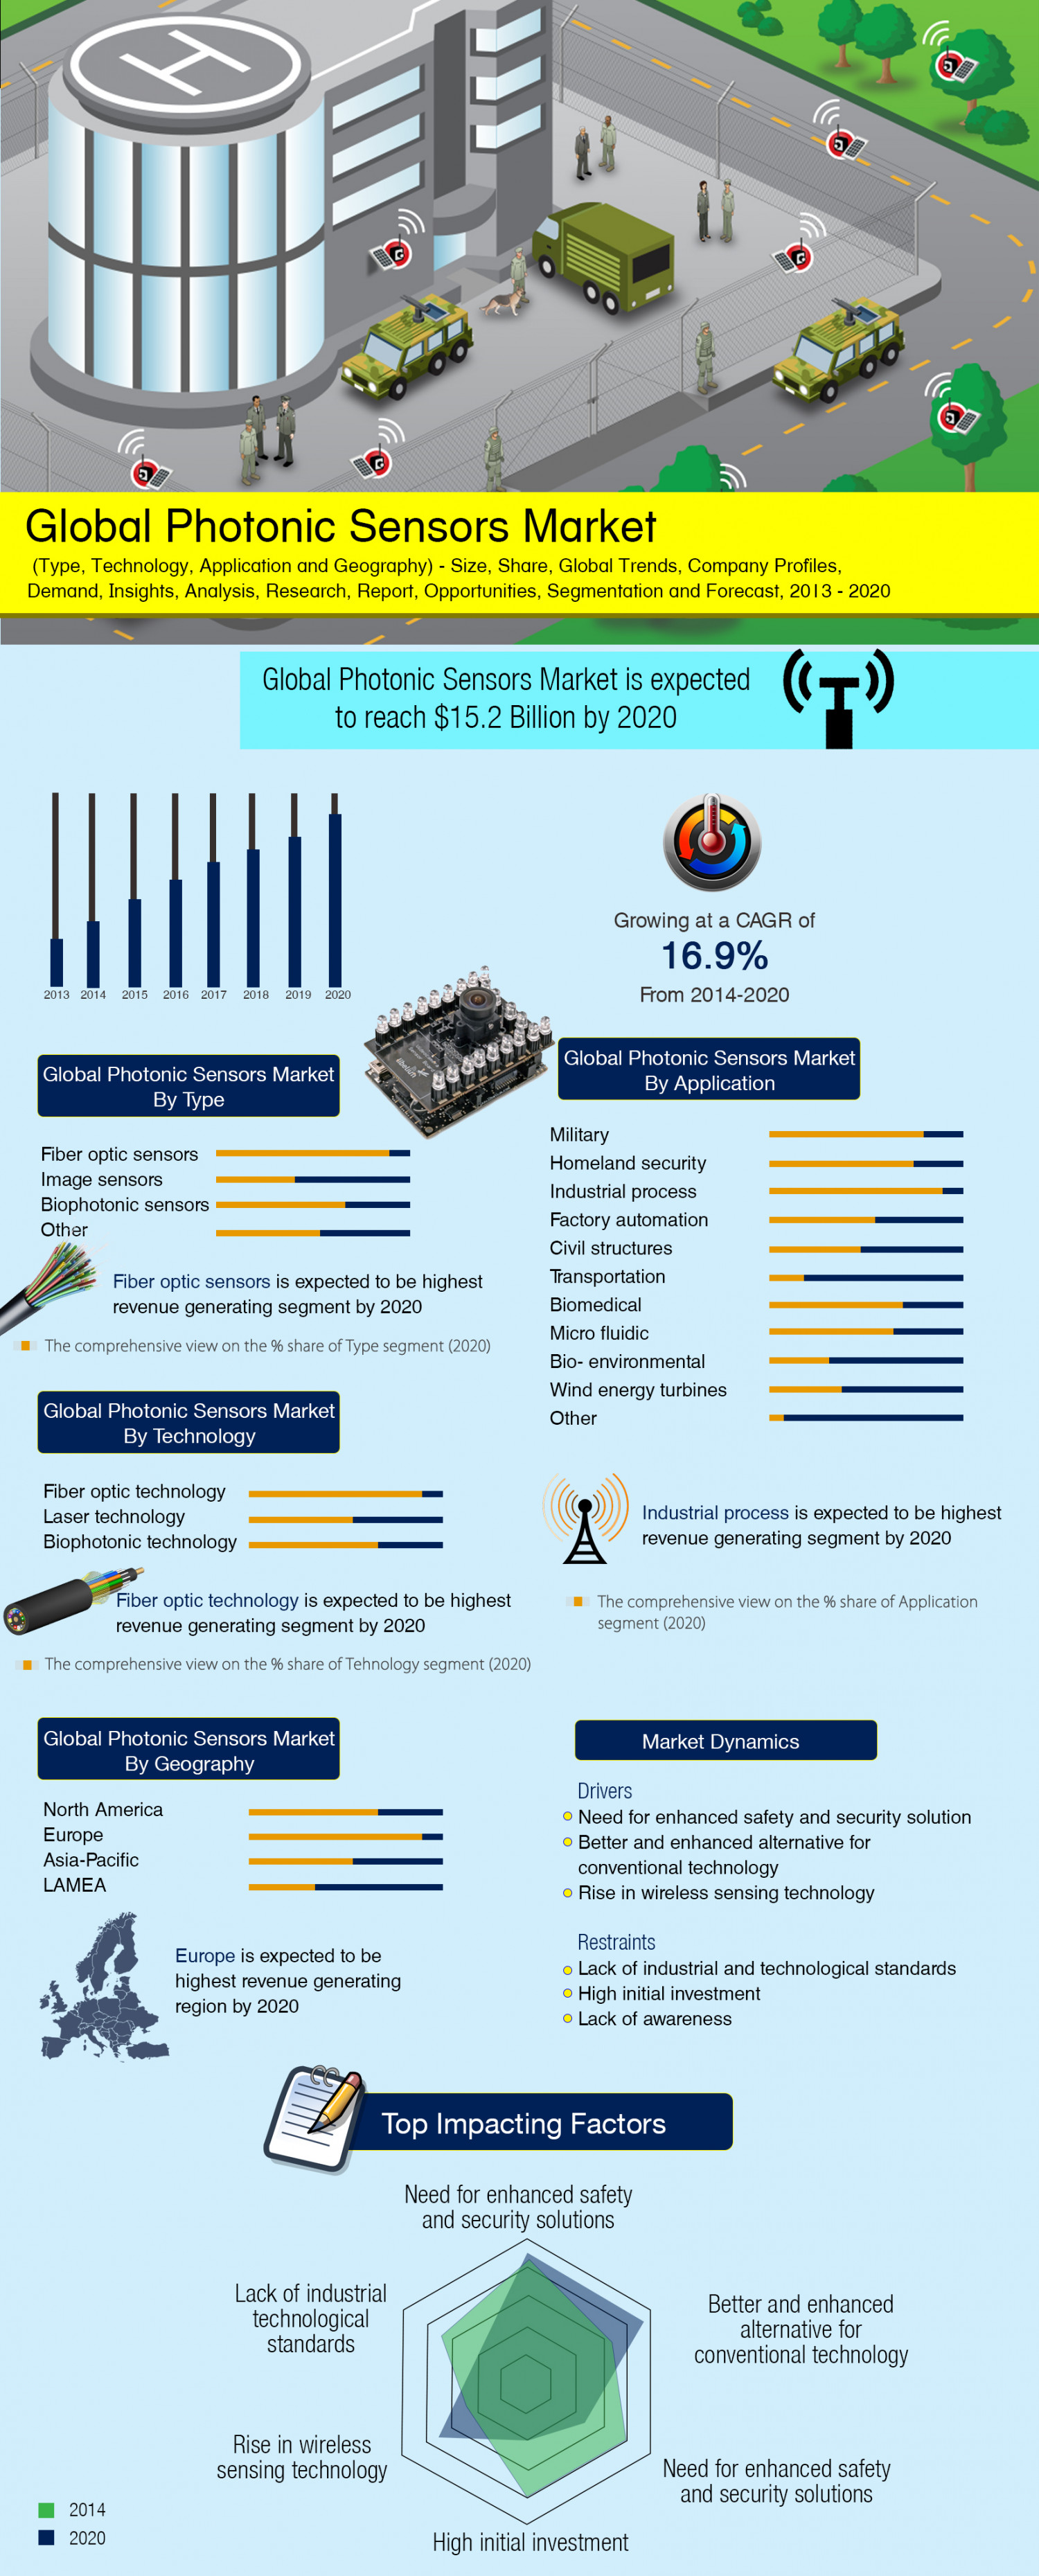 Global Photonics Sensors Market (Type, Technology, Application and Geography) - Size, Share, Global Trends, Company Profiles, Demand, Insights, Analysis, Research, Report, Opportunities, Segmentation and Forecast, 2013 - 2020 Infographic